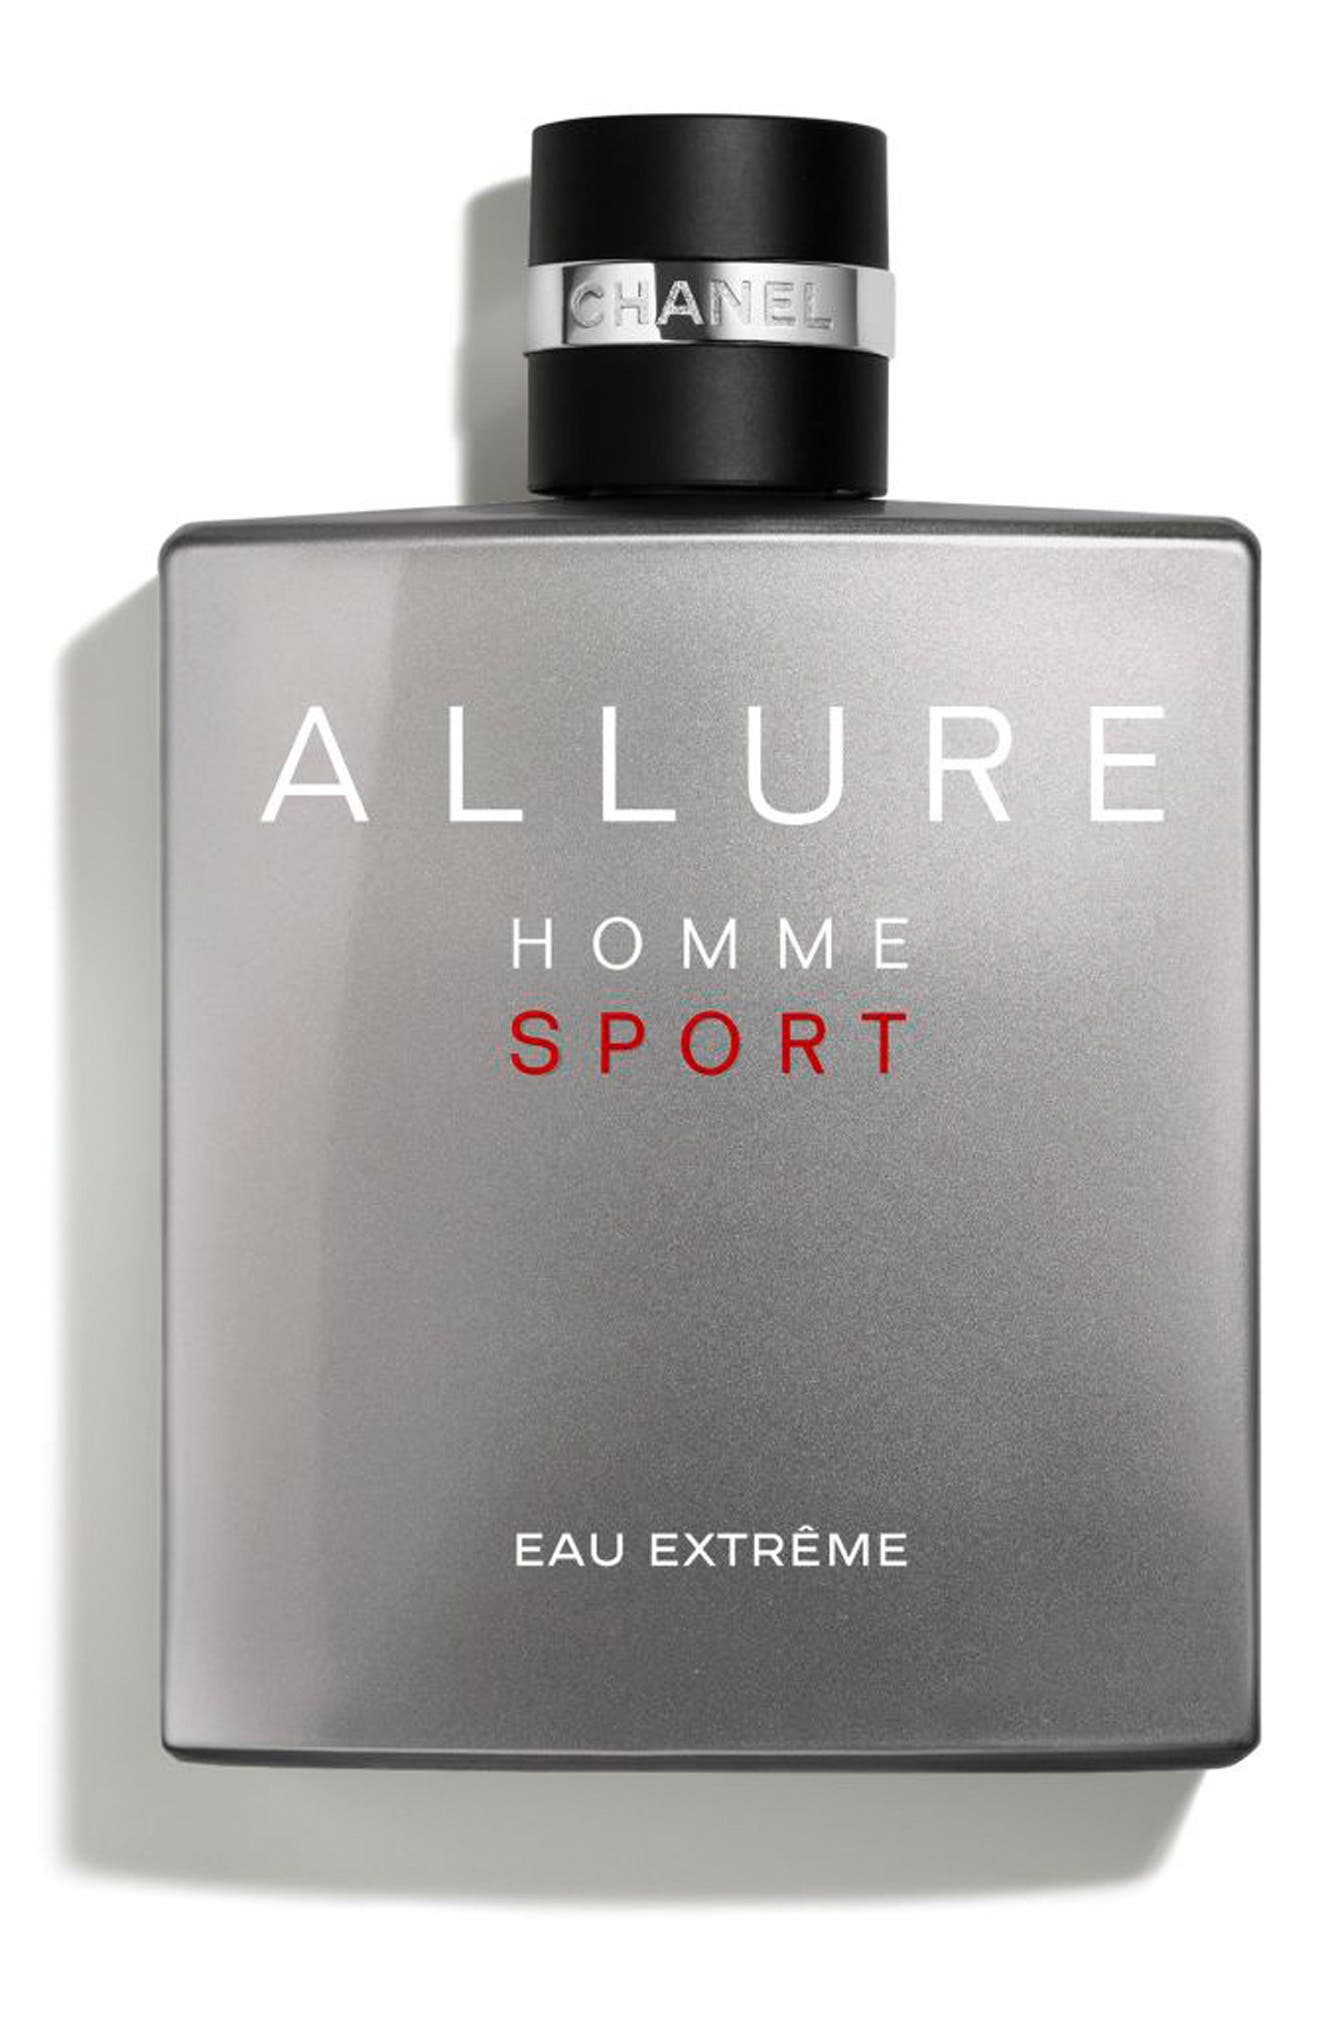 ALLURE HOMME SPORT EAU EXTREME Eau de Parfum,                             Alternate thumbnail 2, color,                             000